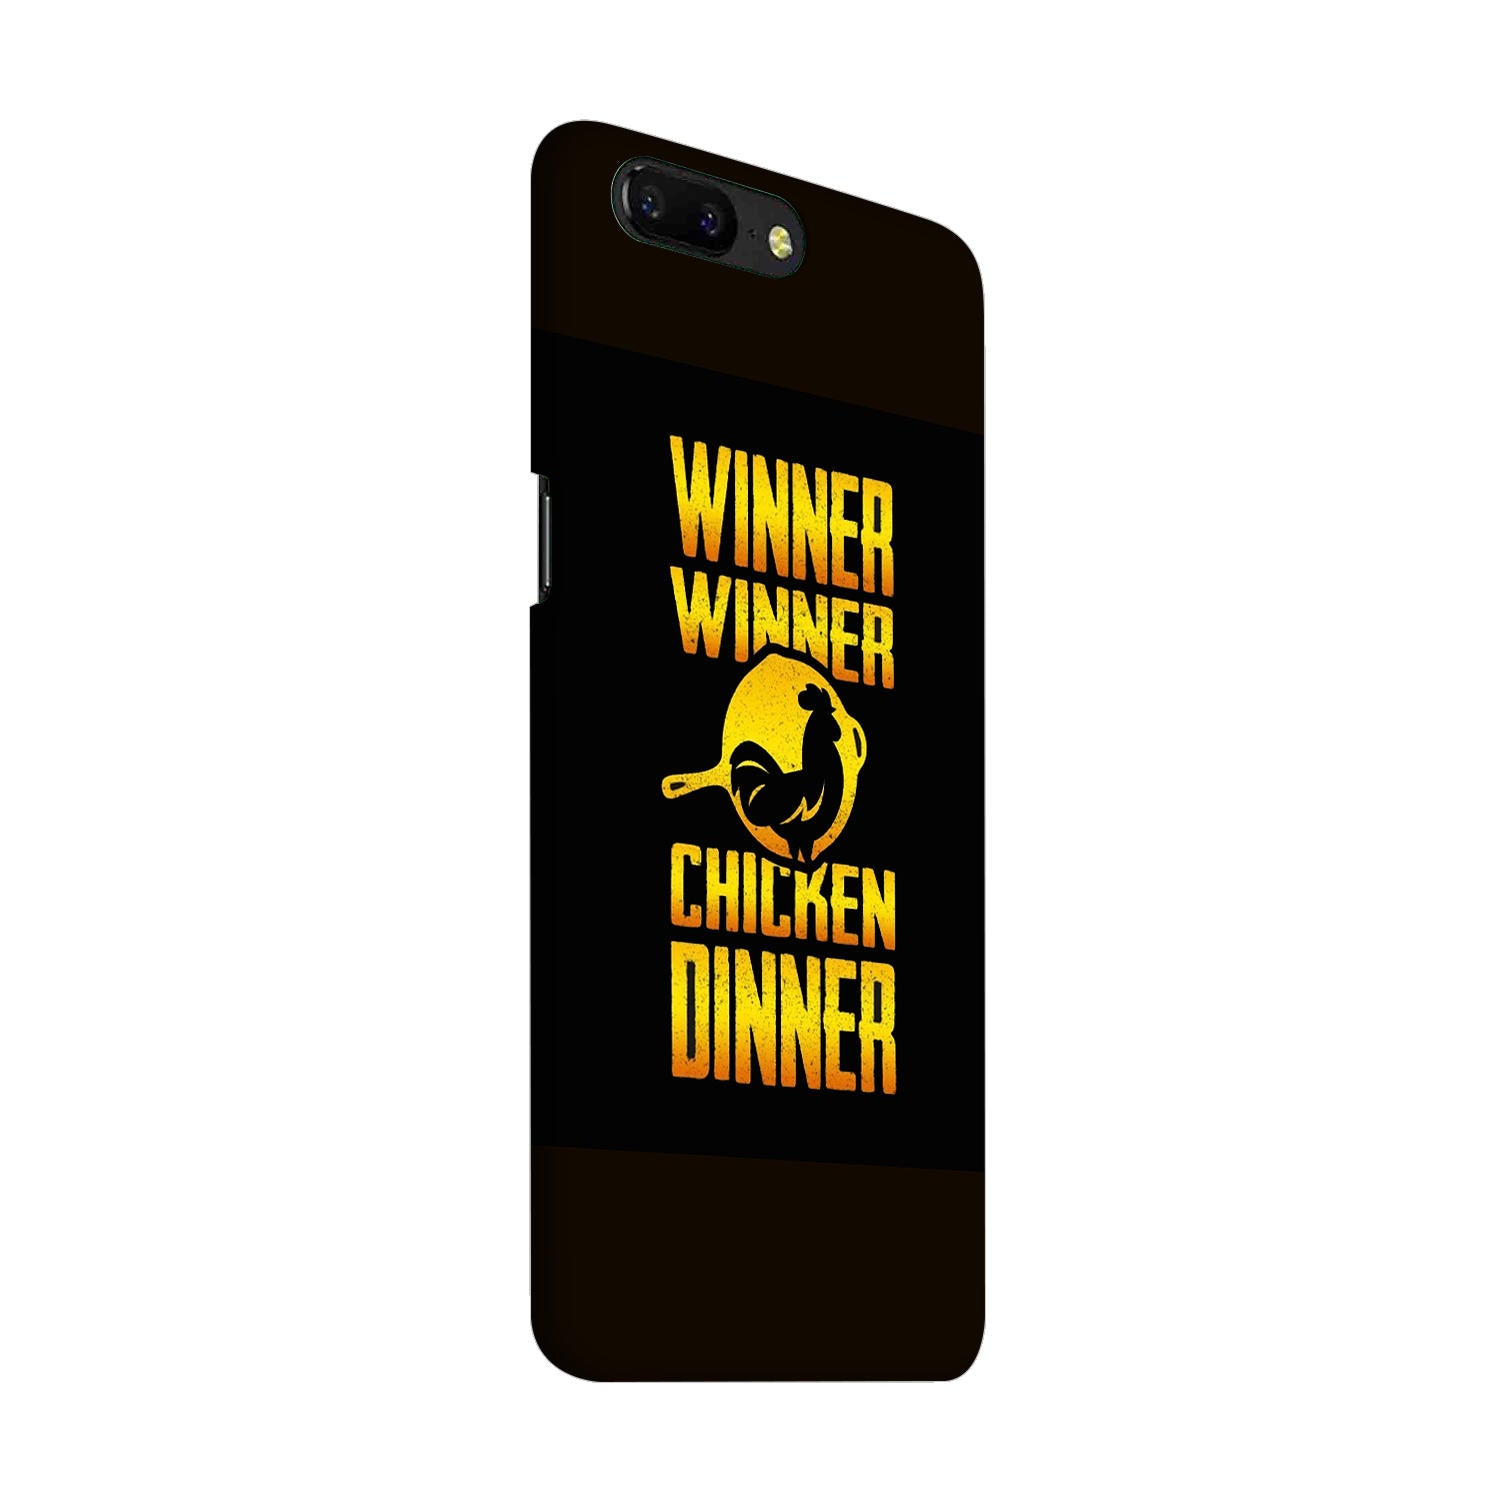 Chicken Dinner Pan For Winner Typography OnePlus 5 Mobile Cover Case - MADANYU